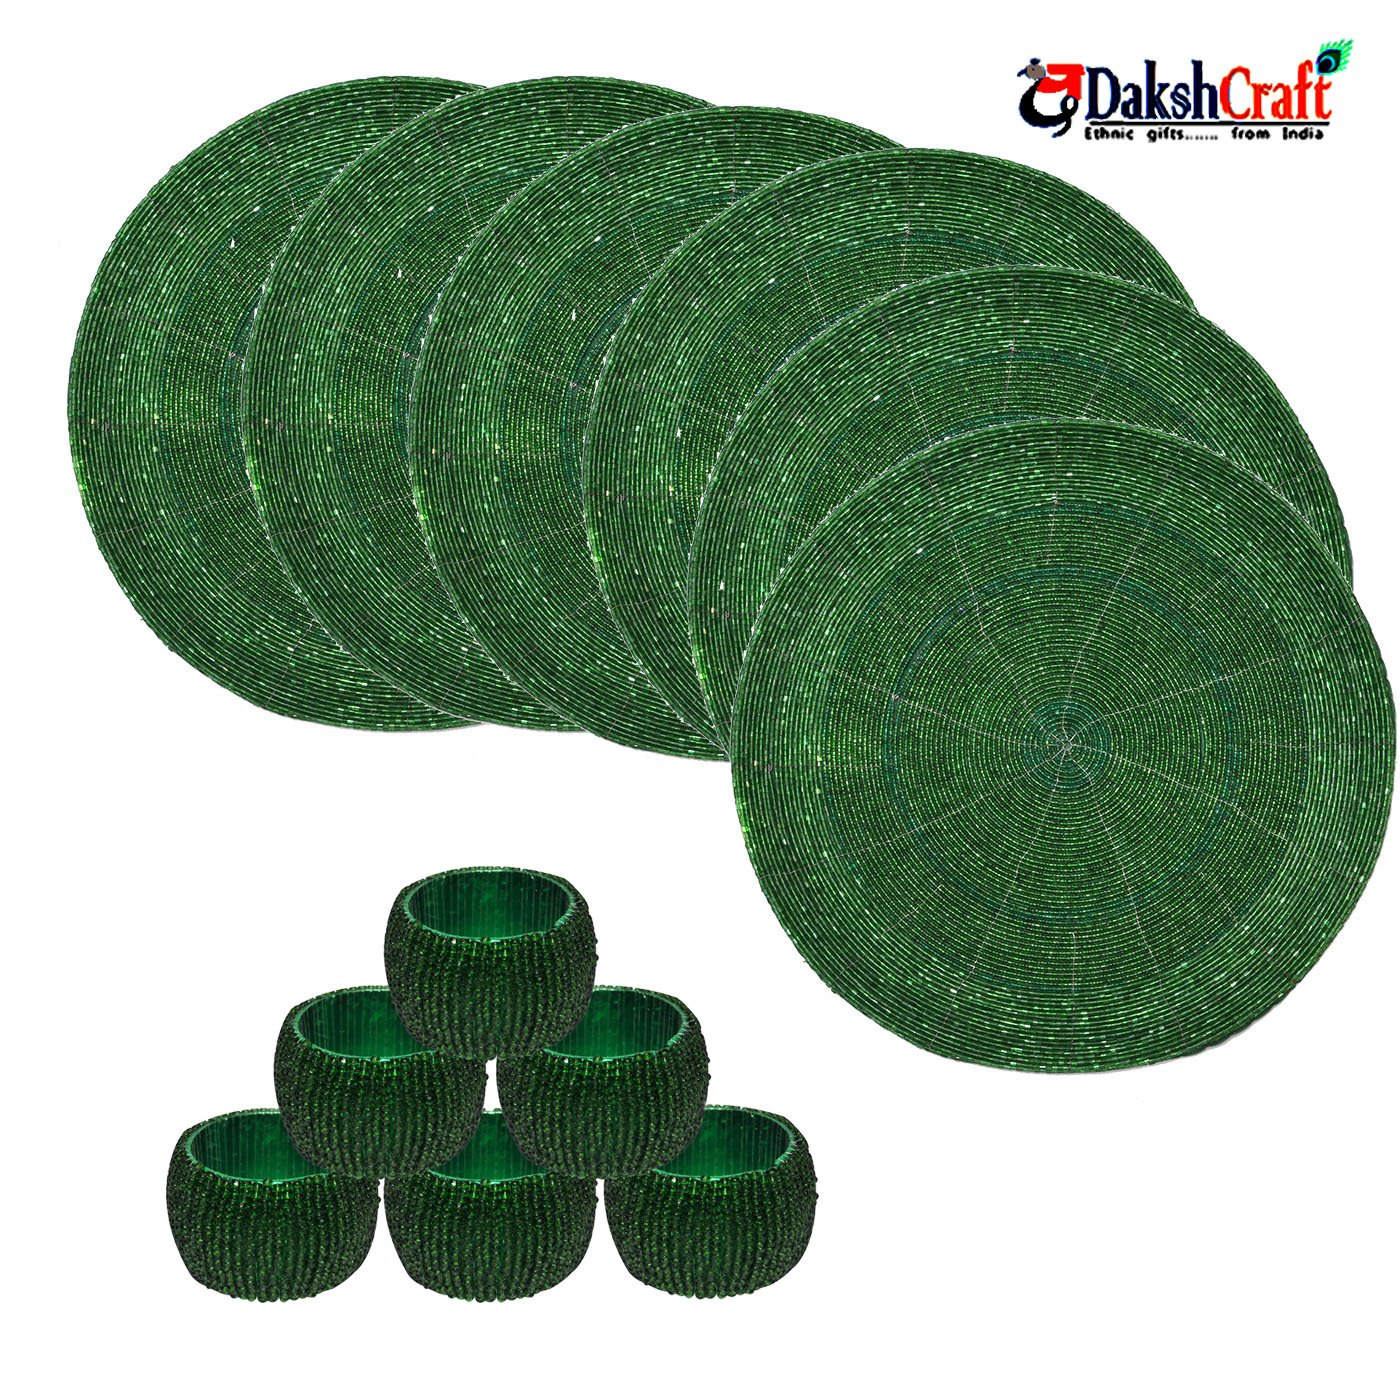 Christmas Tablescape Décor - Green Beaded Placemats & Napkin Rings Set of 6 Each